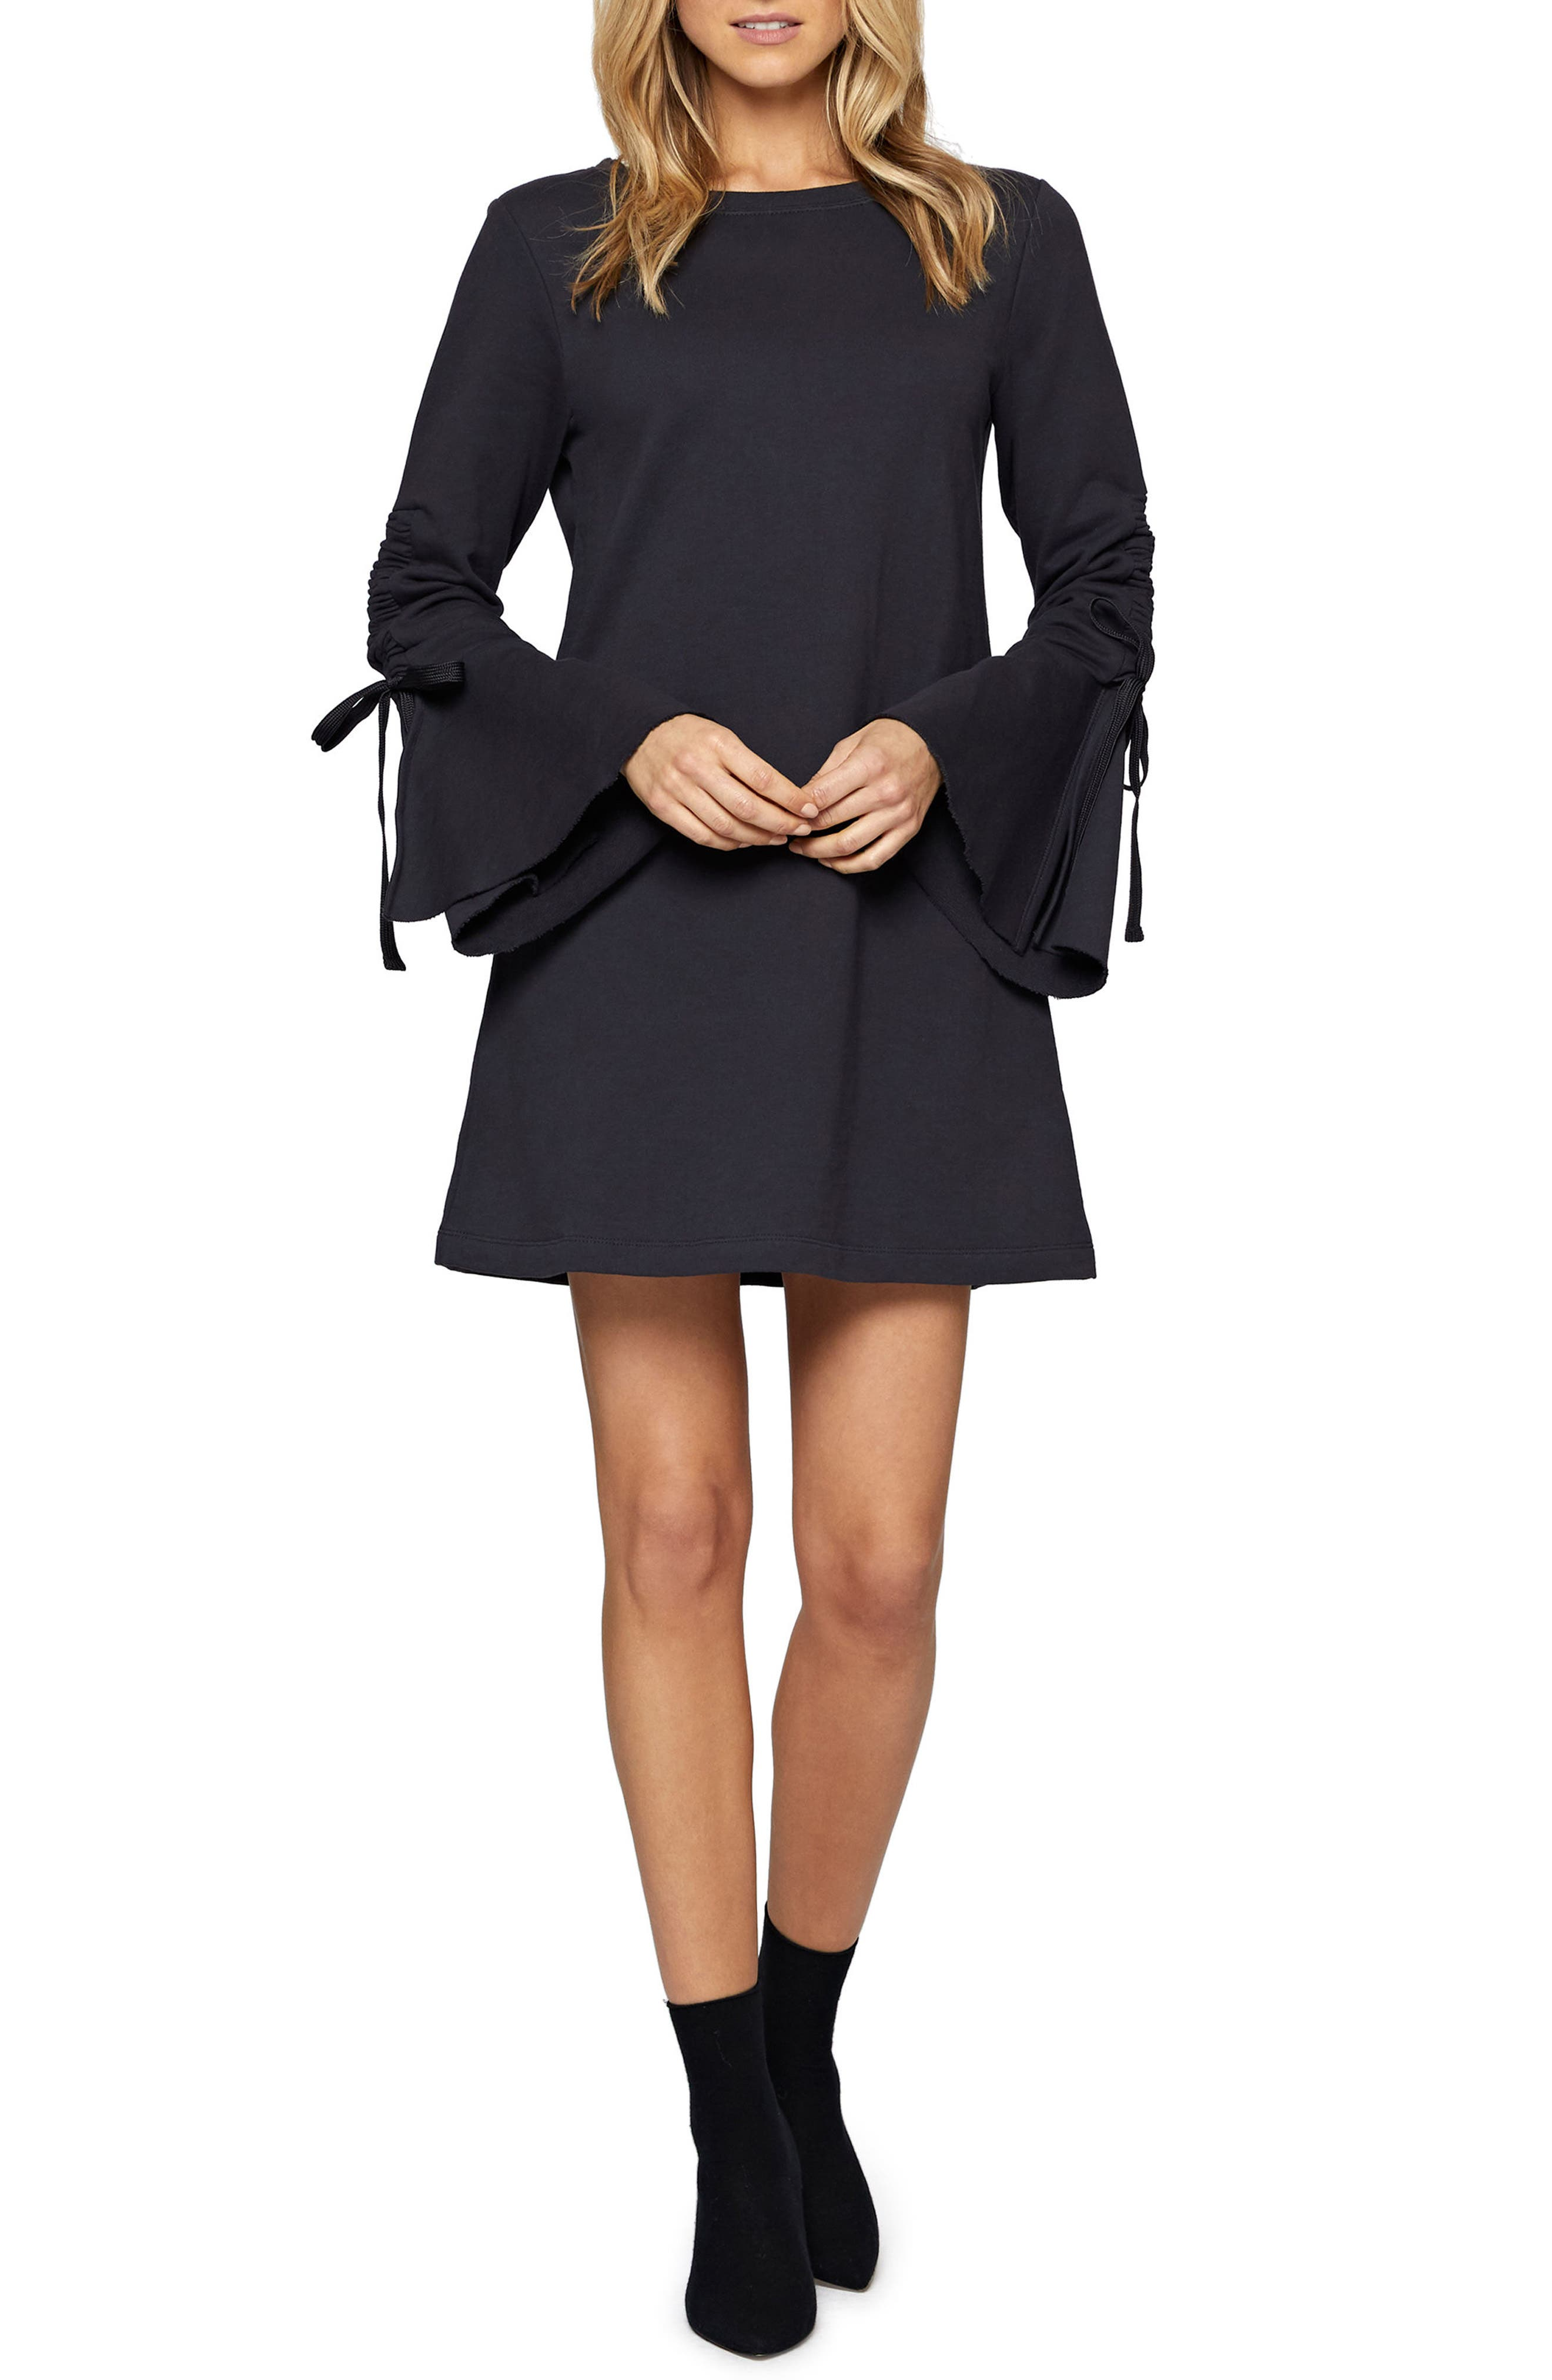 Alternate Image 1 Selected - Sanctuary Giovana Tie Sleeve Minidress (Regular & Petite)